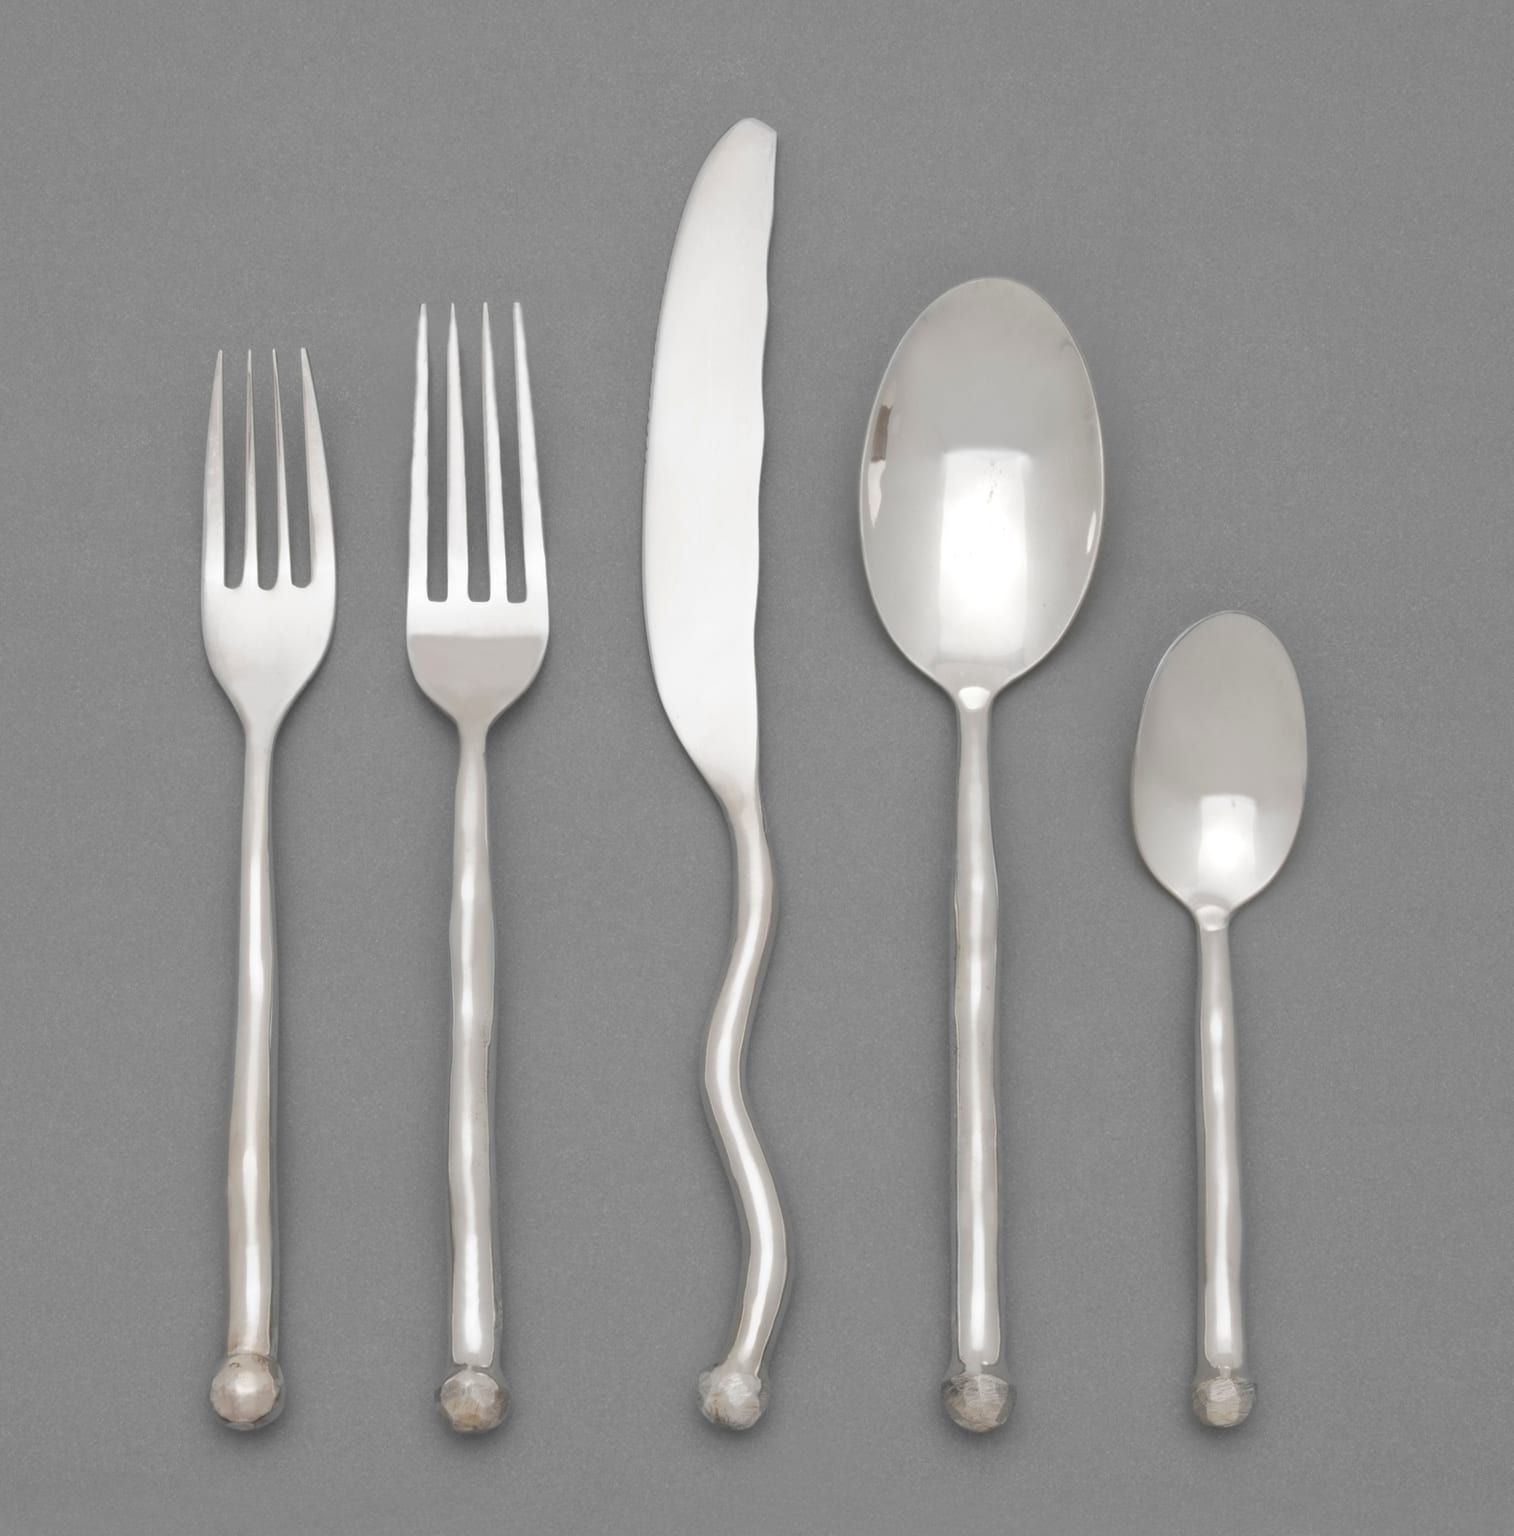 Sphere Cutlery by Izabel Lam. © Philadelphia Museum of Art